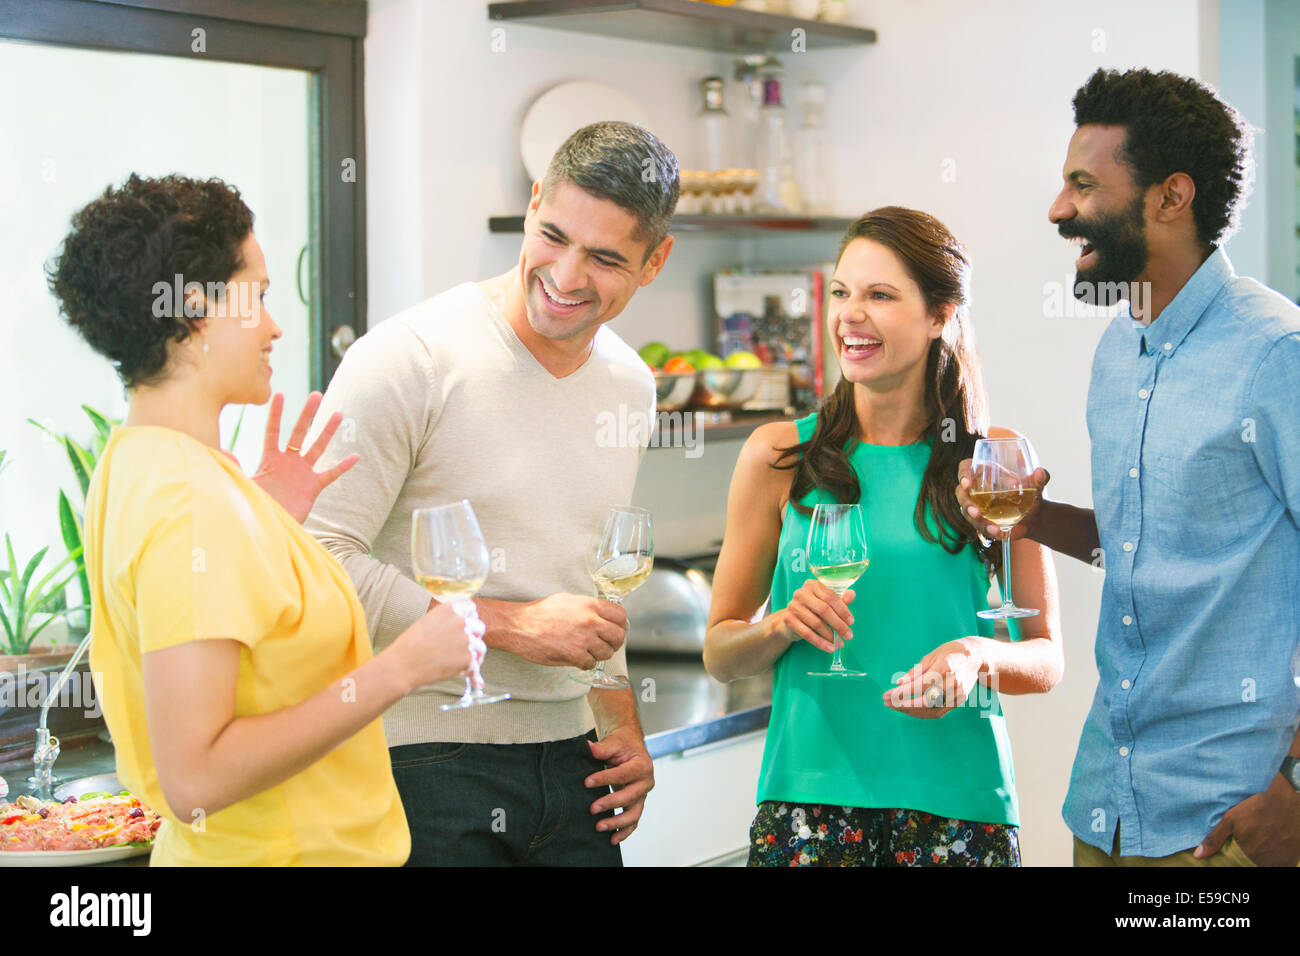 Couples talking at party - Stock Image